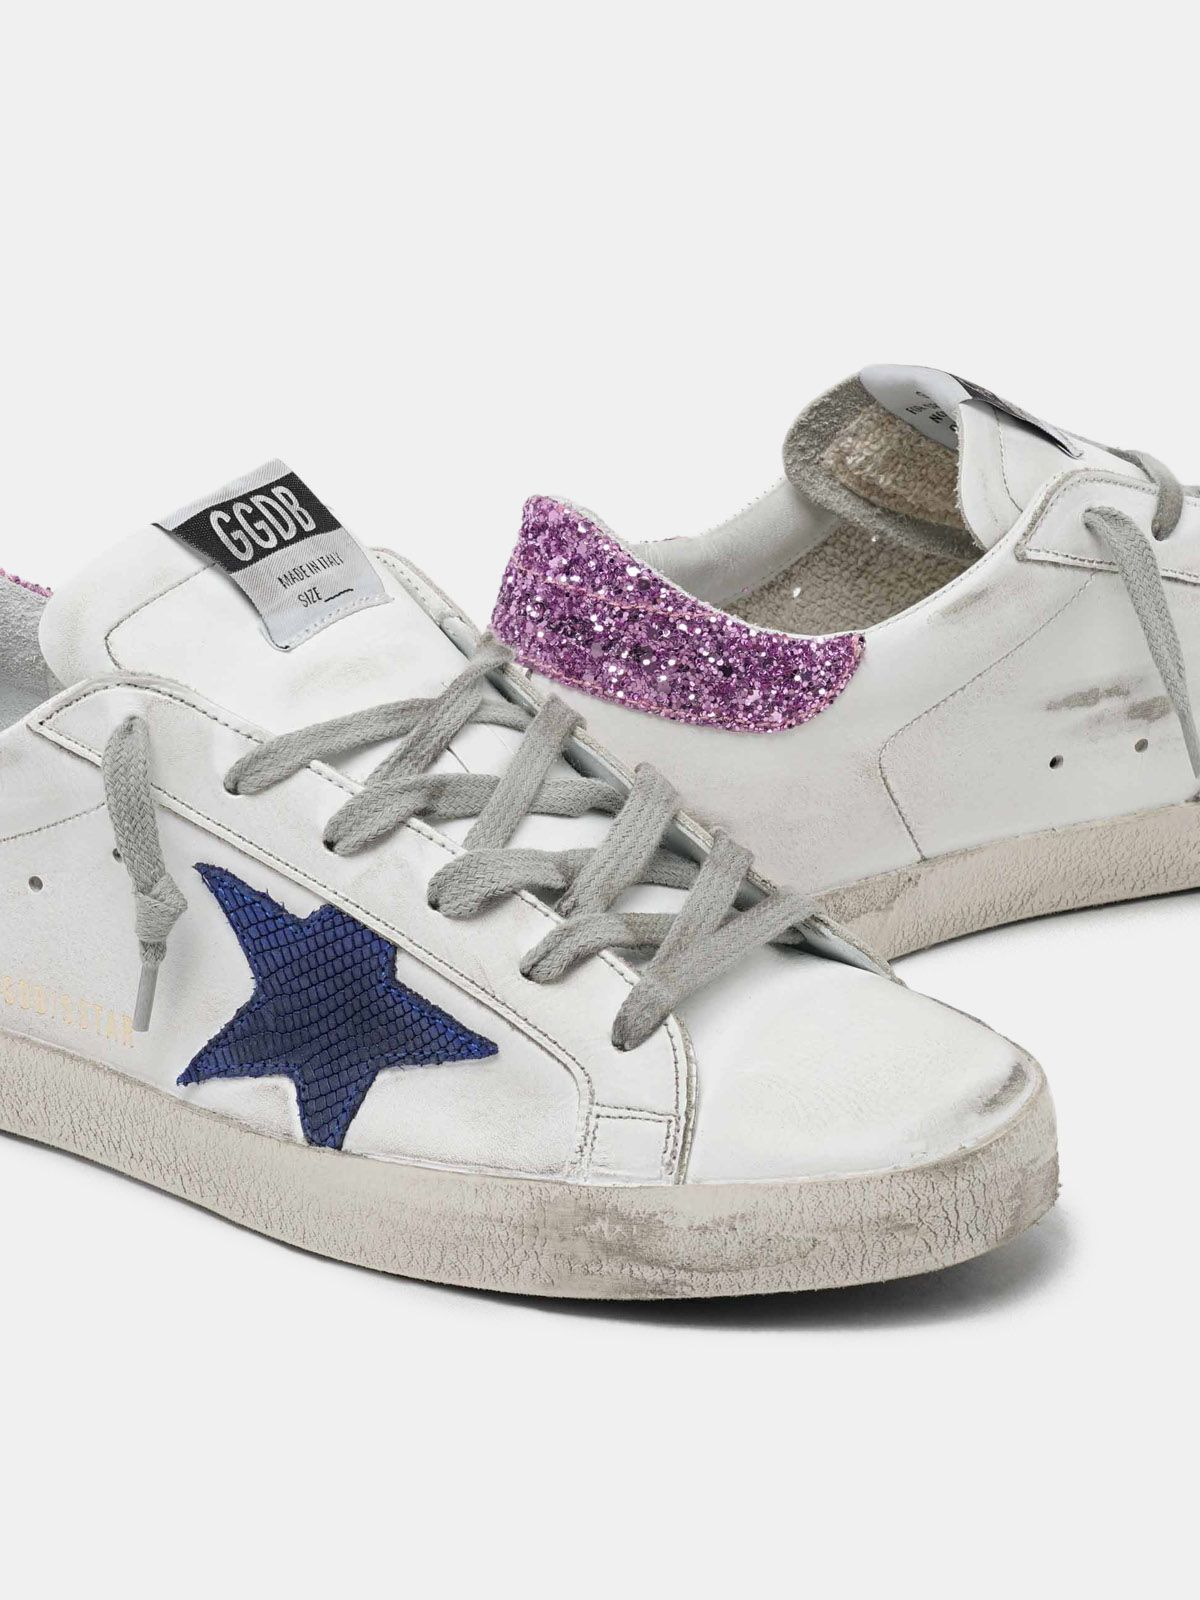 Golden Goose - White Super-Star sneakers with blue star and glittery heel tab in